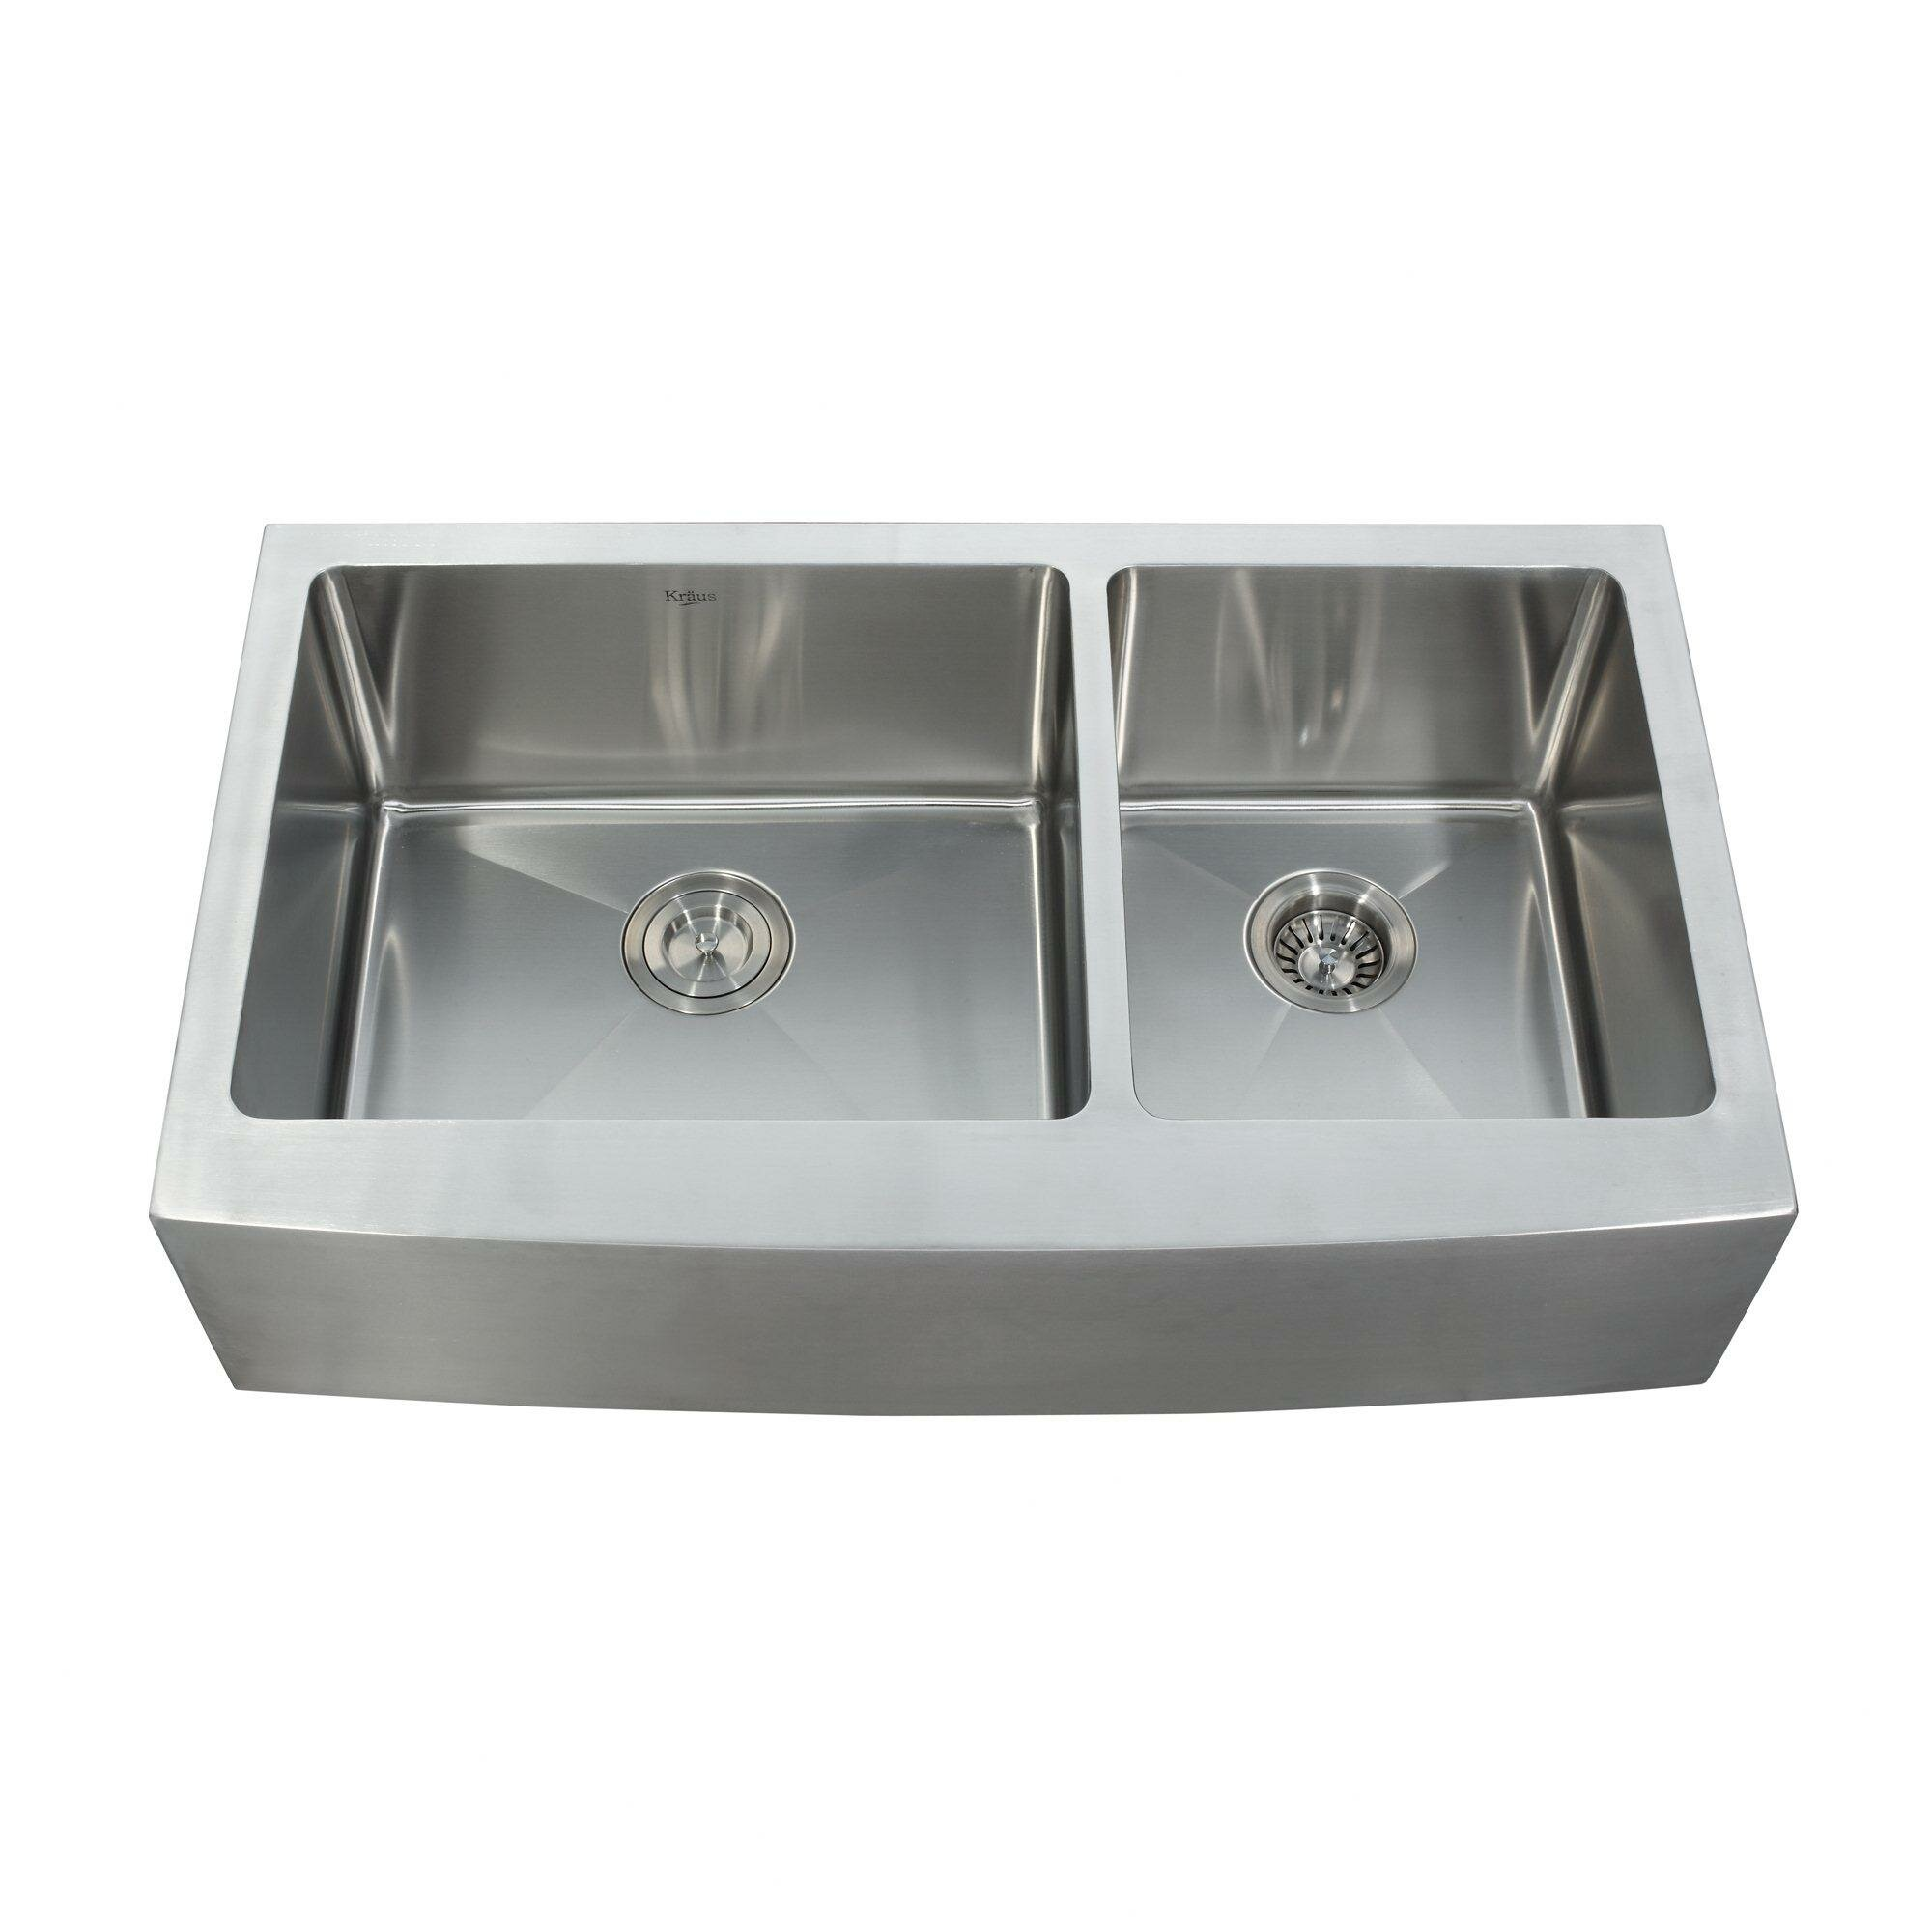 "Kitchen Sink Kraus: Kraus 35.88"" X 20.75"" Farmhouse Double Bowl Kitchen Sink"